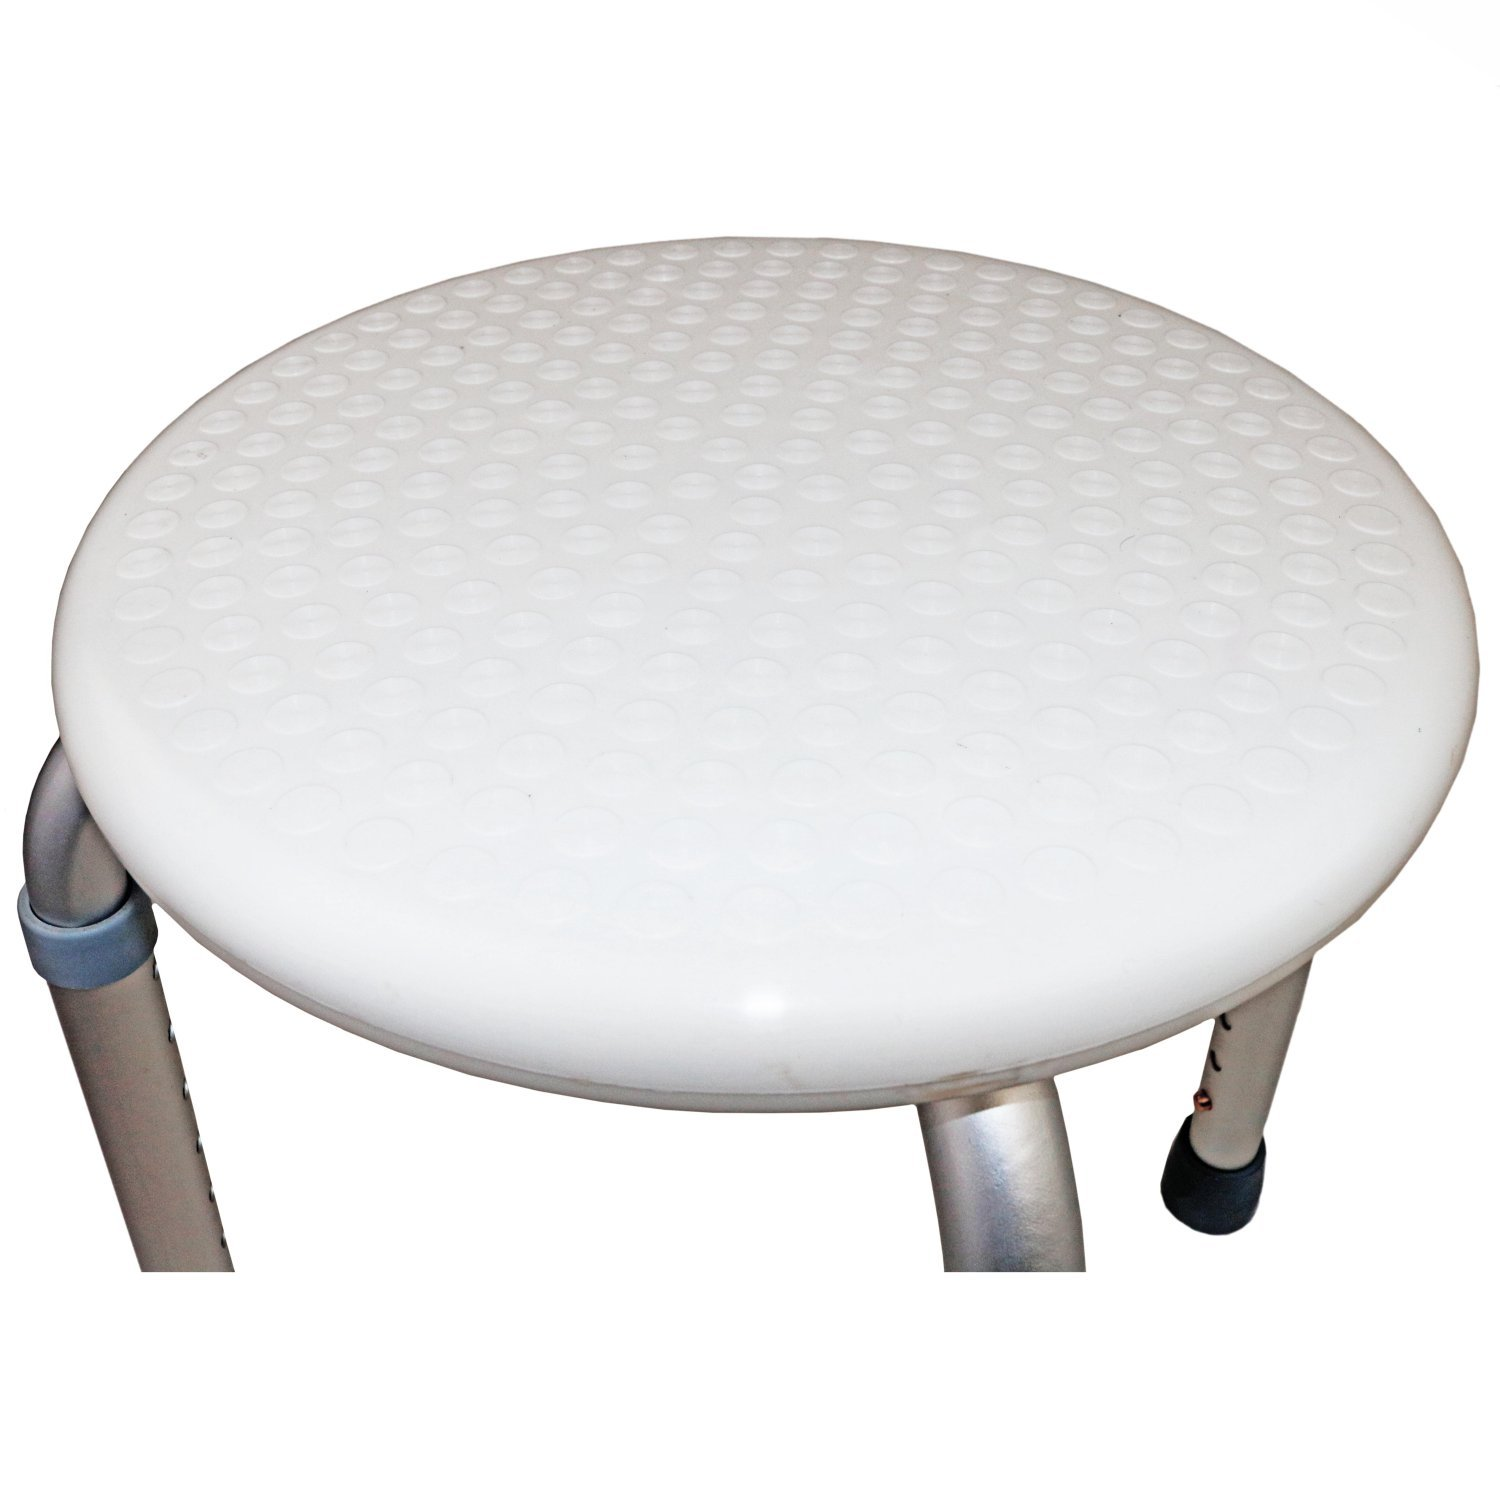 Height Adjustable Round Shower Stool Seat Disability Aid - £17.99 ...